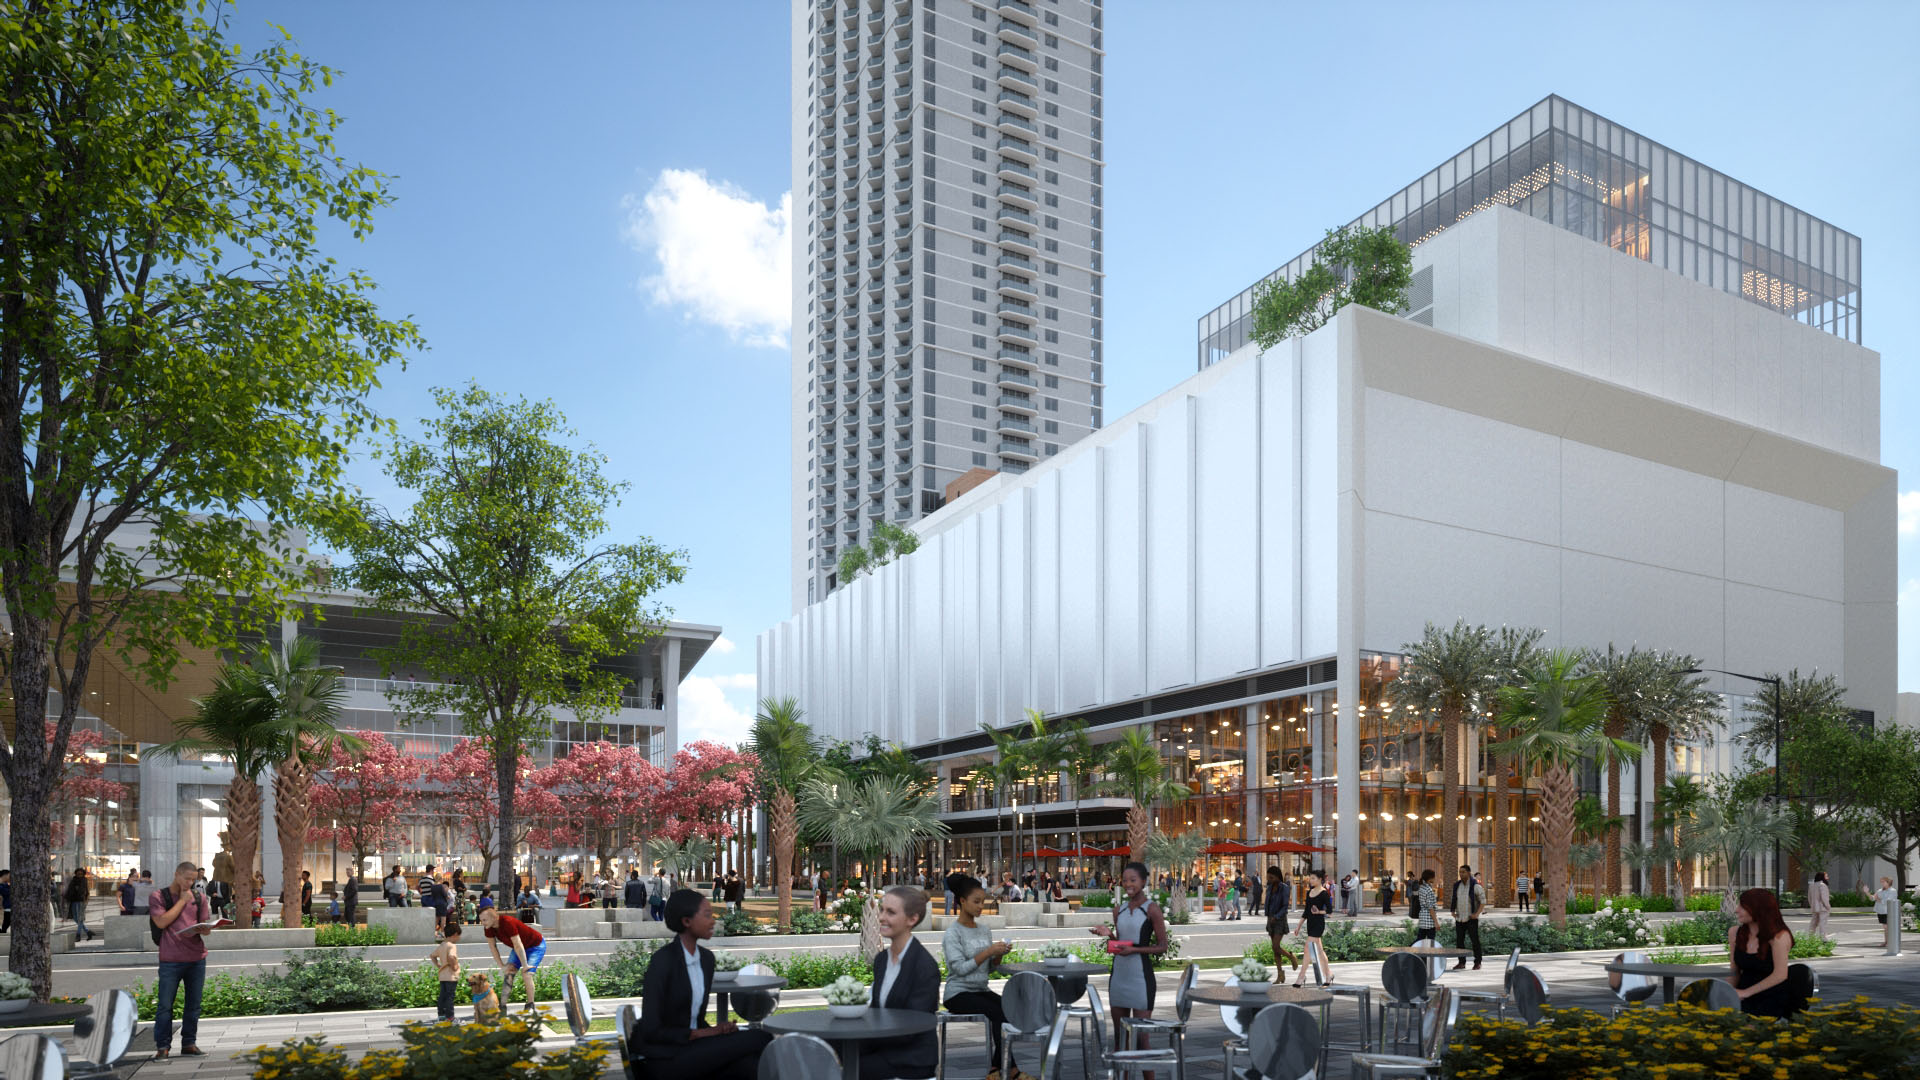 MIAMI WORLDCENTER City Block H Miami, Florida - Sector: Mixed use facility to include Food & Beverage, Retail, Public Parking Garage and ResidentialService Provided: Real Estate Development Management and Advisory, Development Design & Construction ManagementClient: Miami Worldcenter AssociatesDesign: Elkus Manfredi ArchitectsArchitect/Engineer: Stantec ArchitectsLocation: Miami, FloridaProject Description: 545,00 GSF Residential, 461,150 GSF for PodiumRetail: 48,000 NSF of Retail, F&B space at level 1, 2, and 12Parking Garage: 922 parking spacesResidential units: 434 for Luma TowerDevelopment Value: $92,000,000Completion Date: Q1 2022The Block H is part of a larger residential development spanning an entire city block from NE 2nd Avenue to NE 1st Avenue. Once completed, it will serve three major urban components. To the east it will frame Miami Worldcenter's main vehicular point of arrival while being visible from Biscayne Boulevard and beyond. To the north, the architectural fabric engages with and responds to the flexible function of MWC's main civic plaza. Lastly, the southern expression along the Florida East Coast Rail responds to the urban context as a major portal into the MWC project.Block H is one of two main public garages.